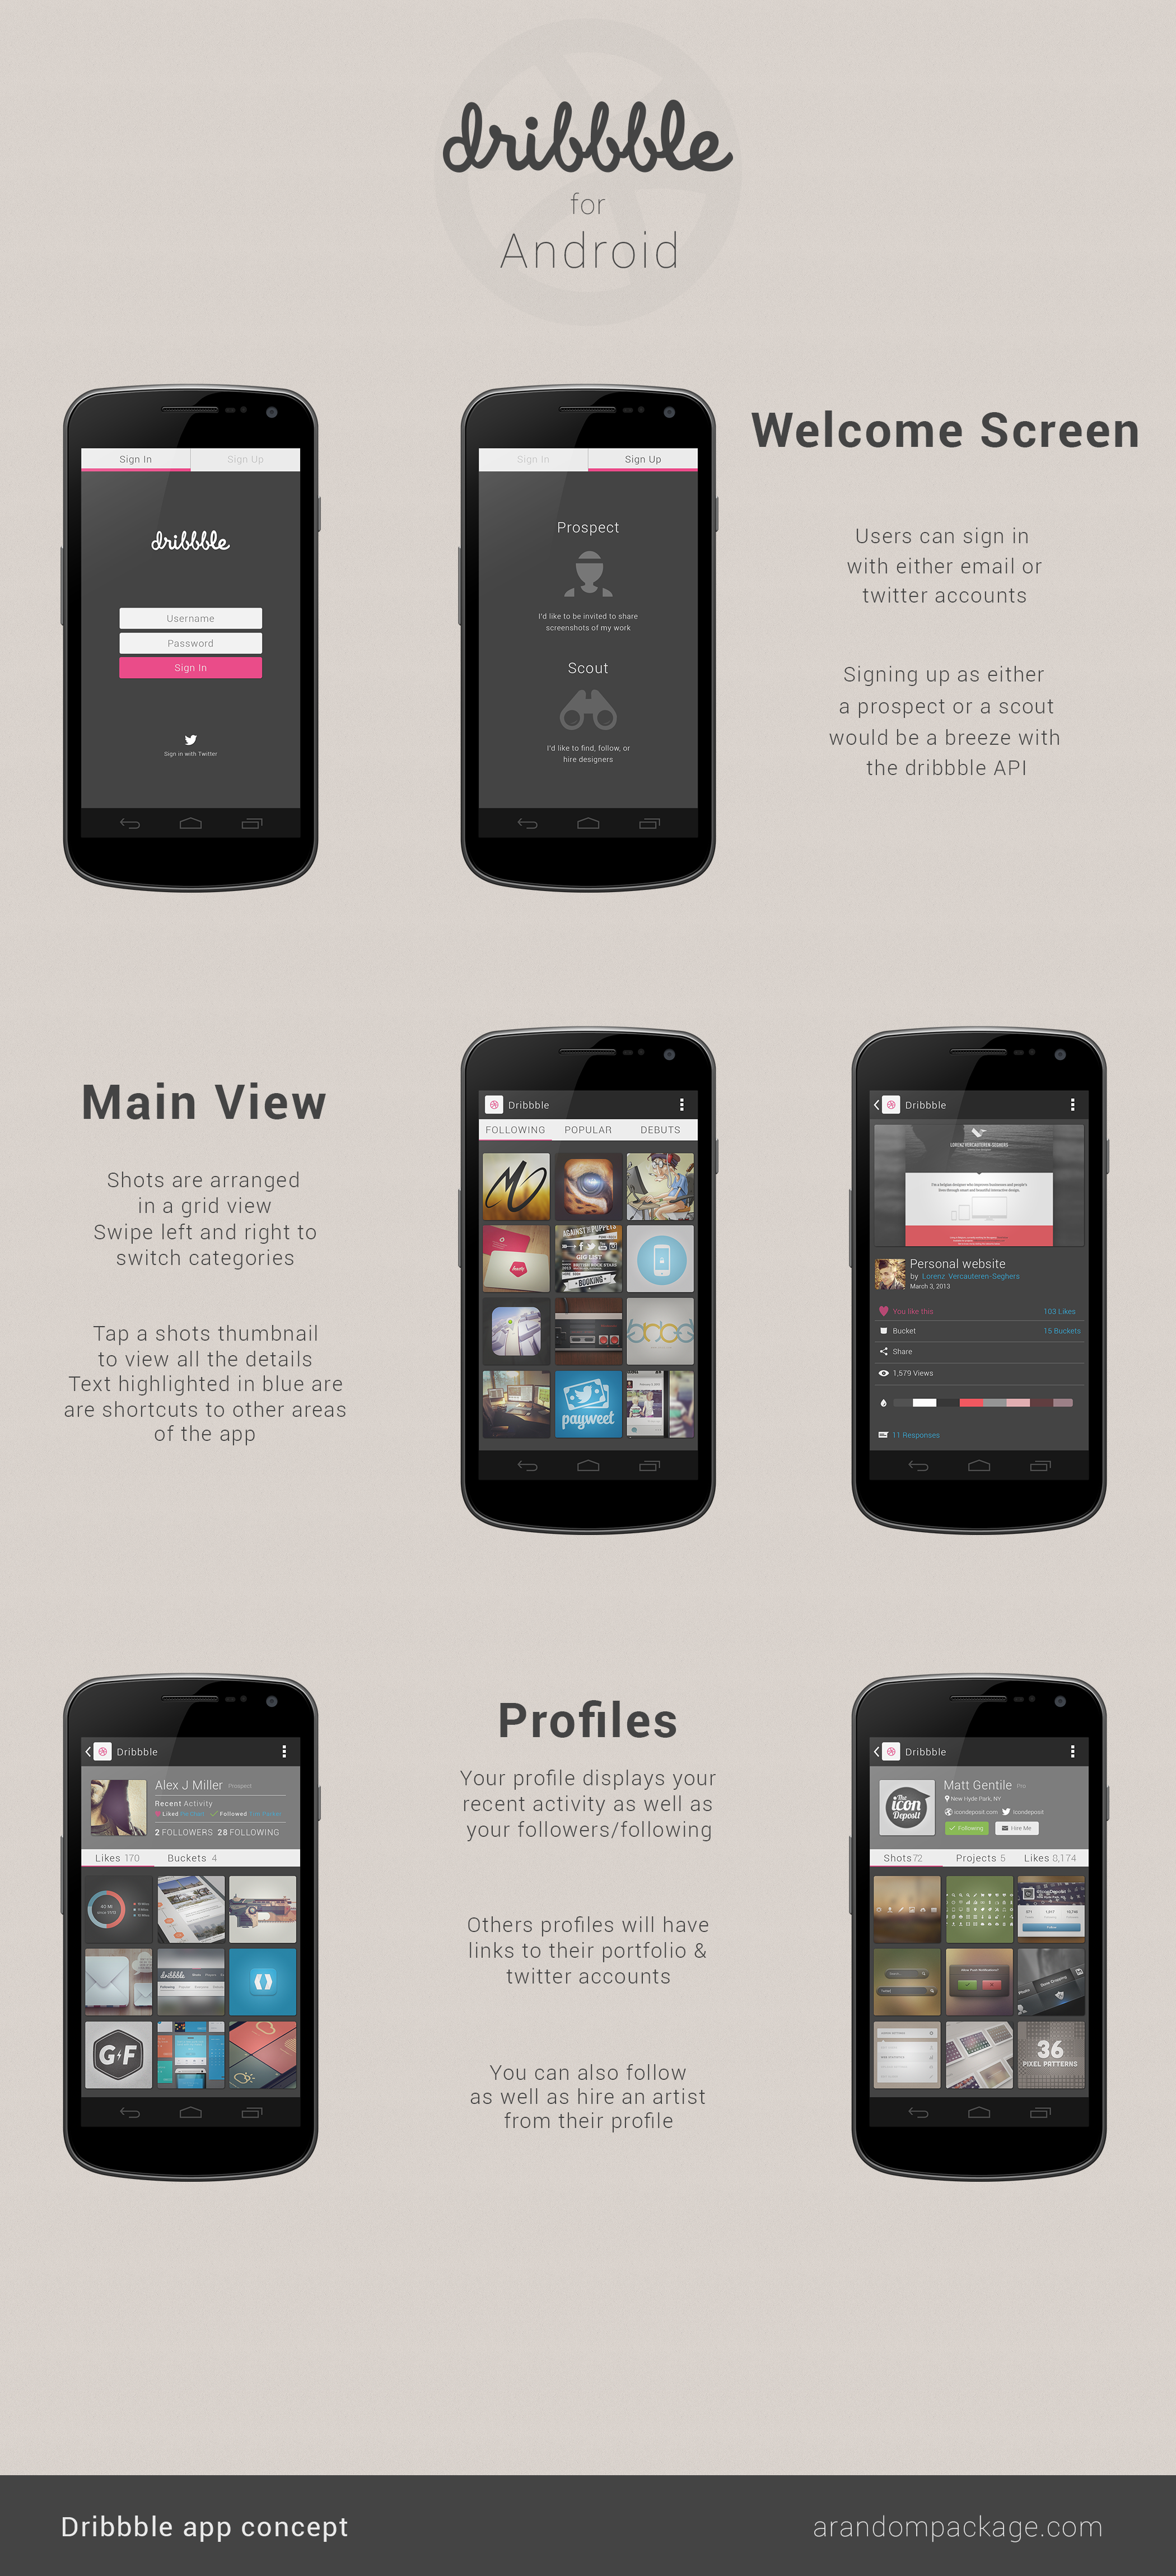 Dribble for Android Concept by AlexJMiller